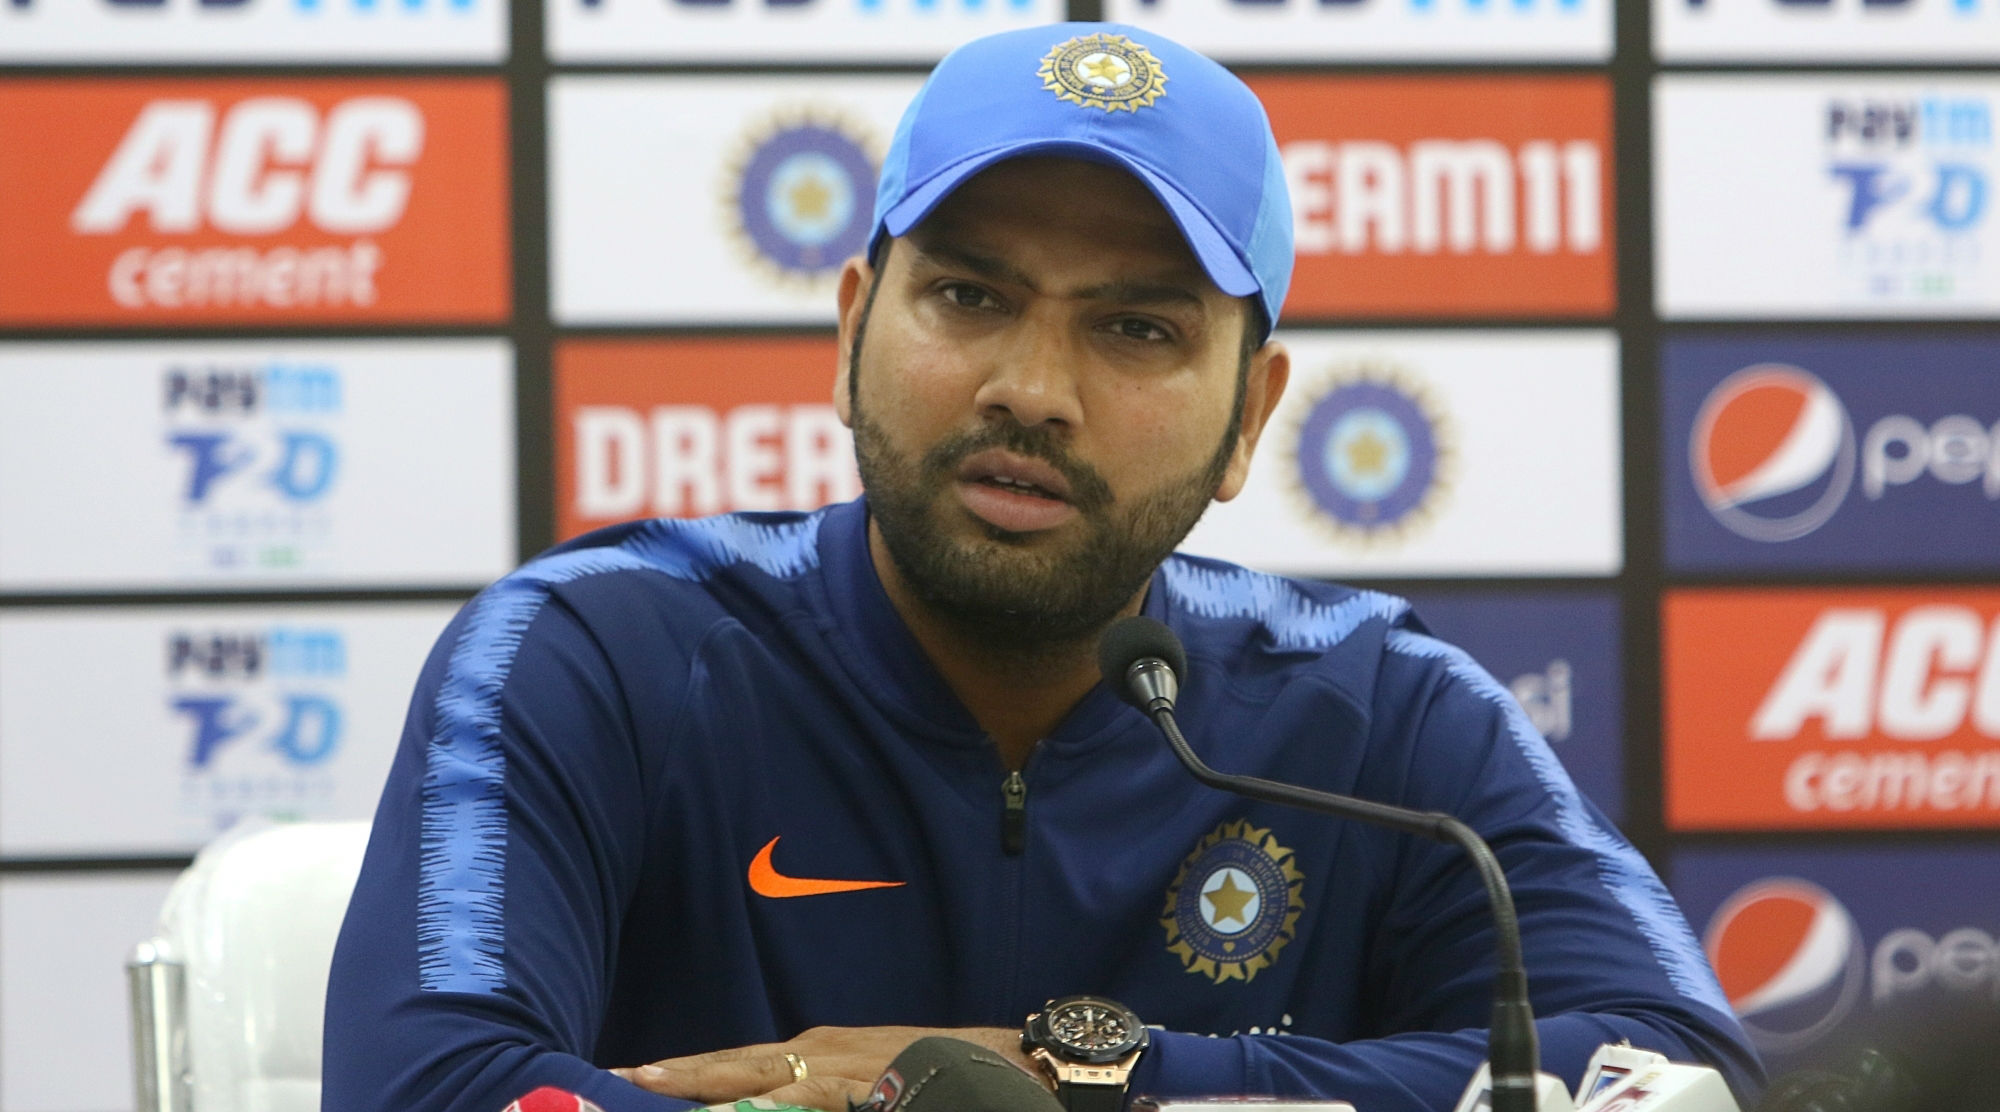 Rohit Sharma Reacts to Allegations of Violating BCCI's 'Family Clause' During 2019 Cricket World Cup, Slams Media for Dragging Cricketers' Wives